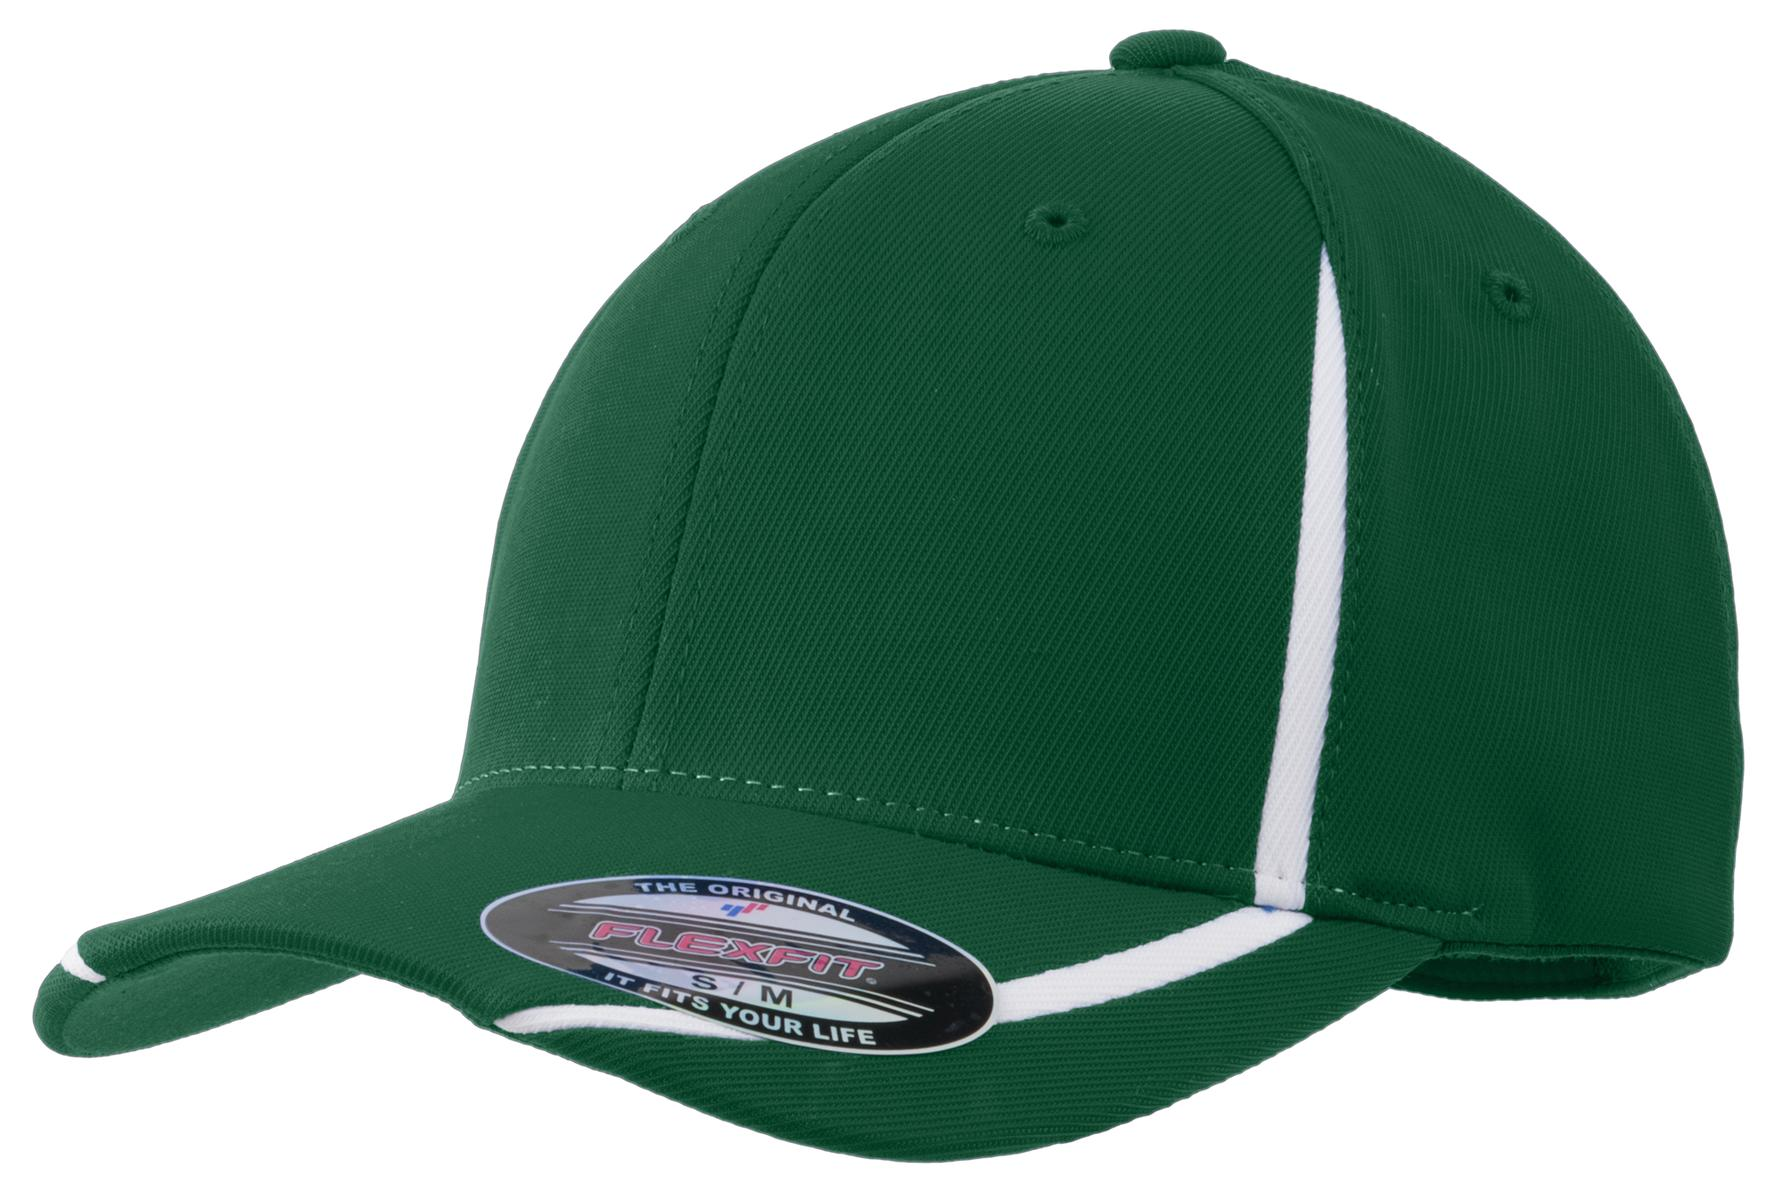 Sport-Tek ®  Flexfit ®  Performance Colorblock Cap. STC16 - Forest Green/White